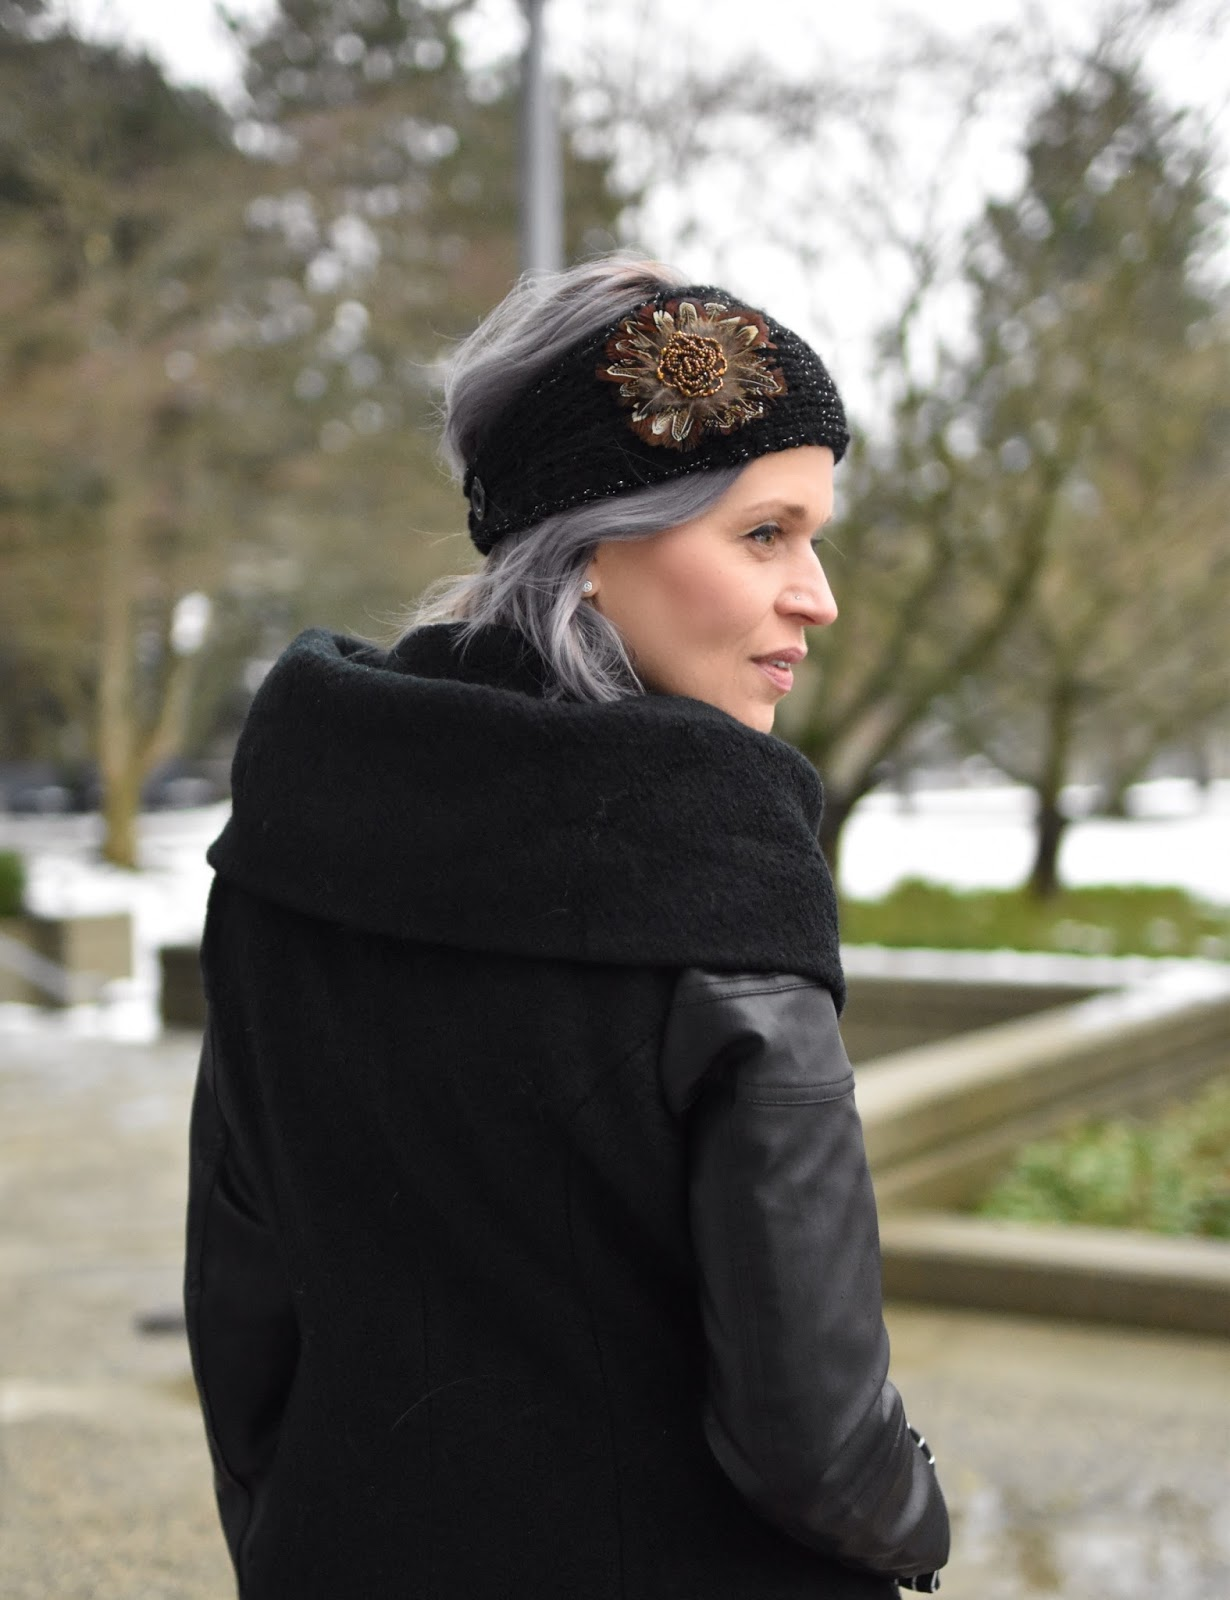 Monika Faulkner outfit inspiration - wool and faux-leather shawl-collar coat, feather-embellished headband